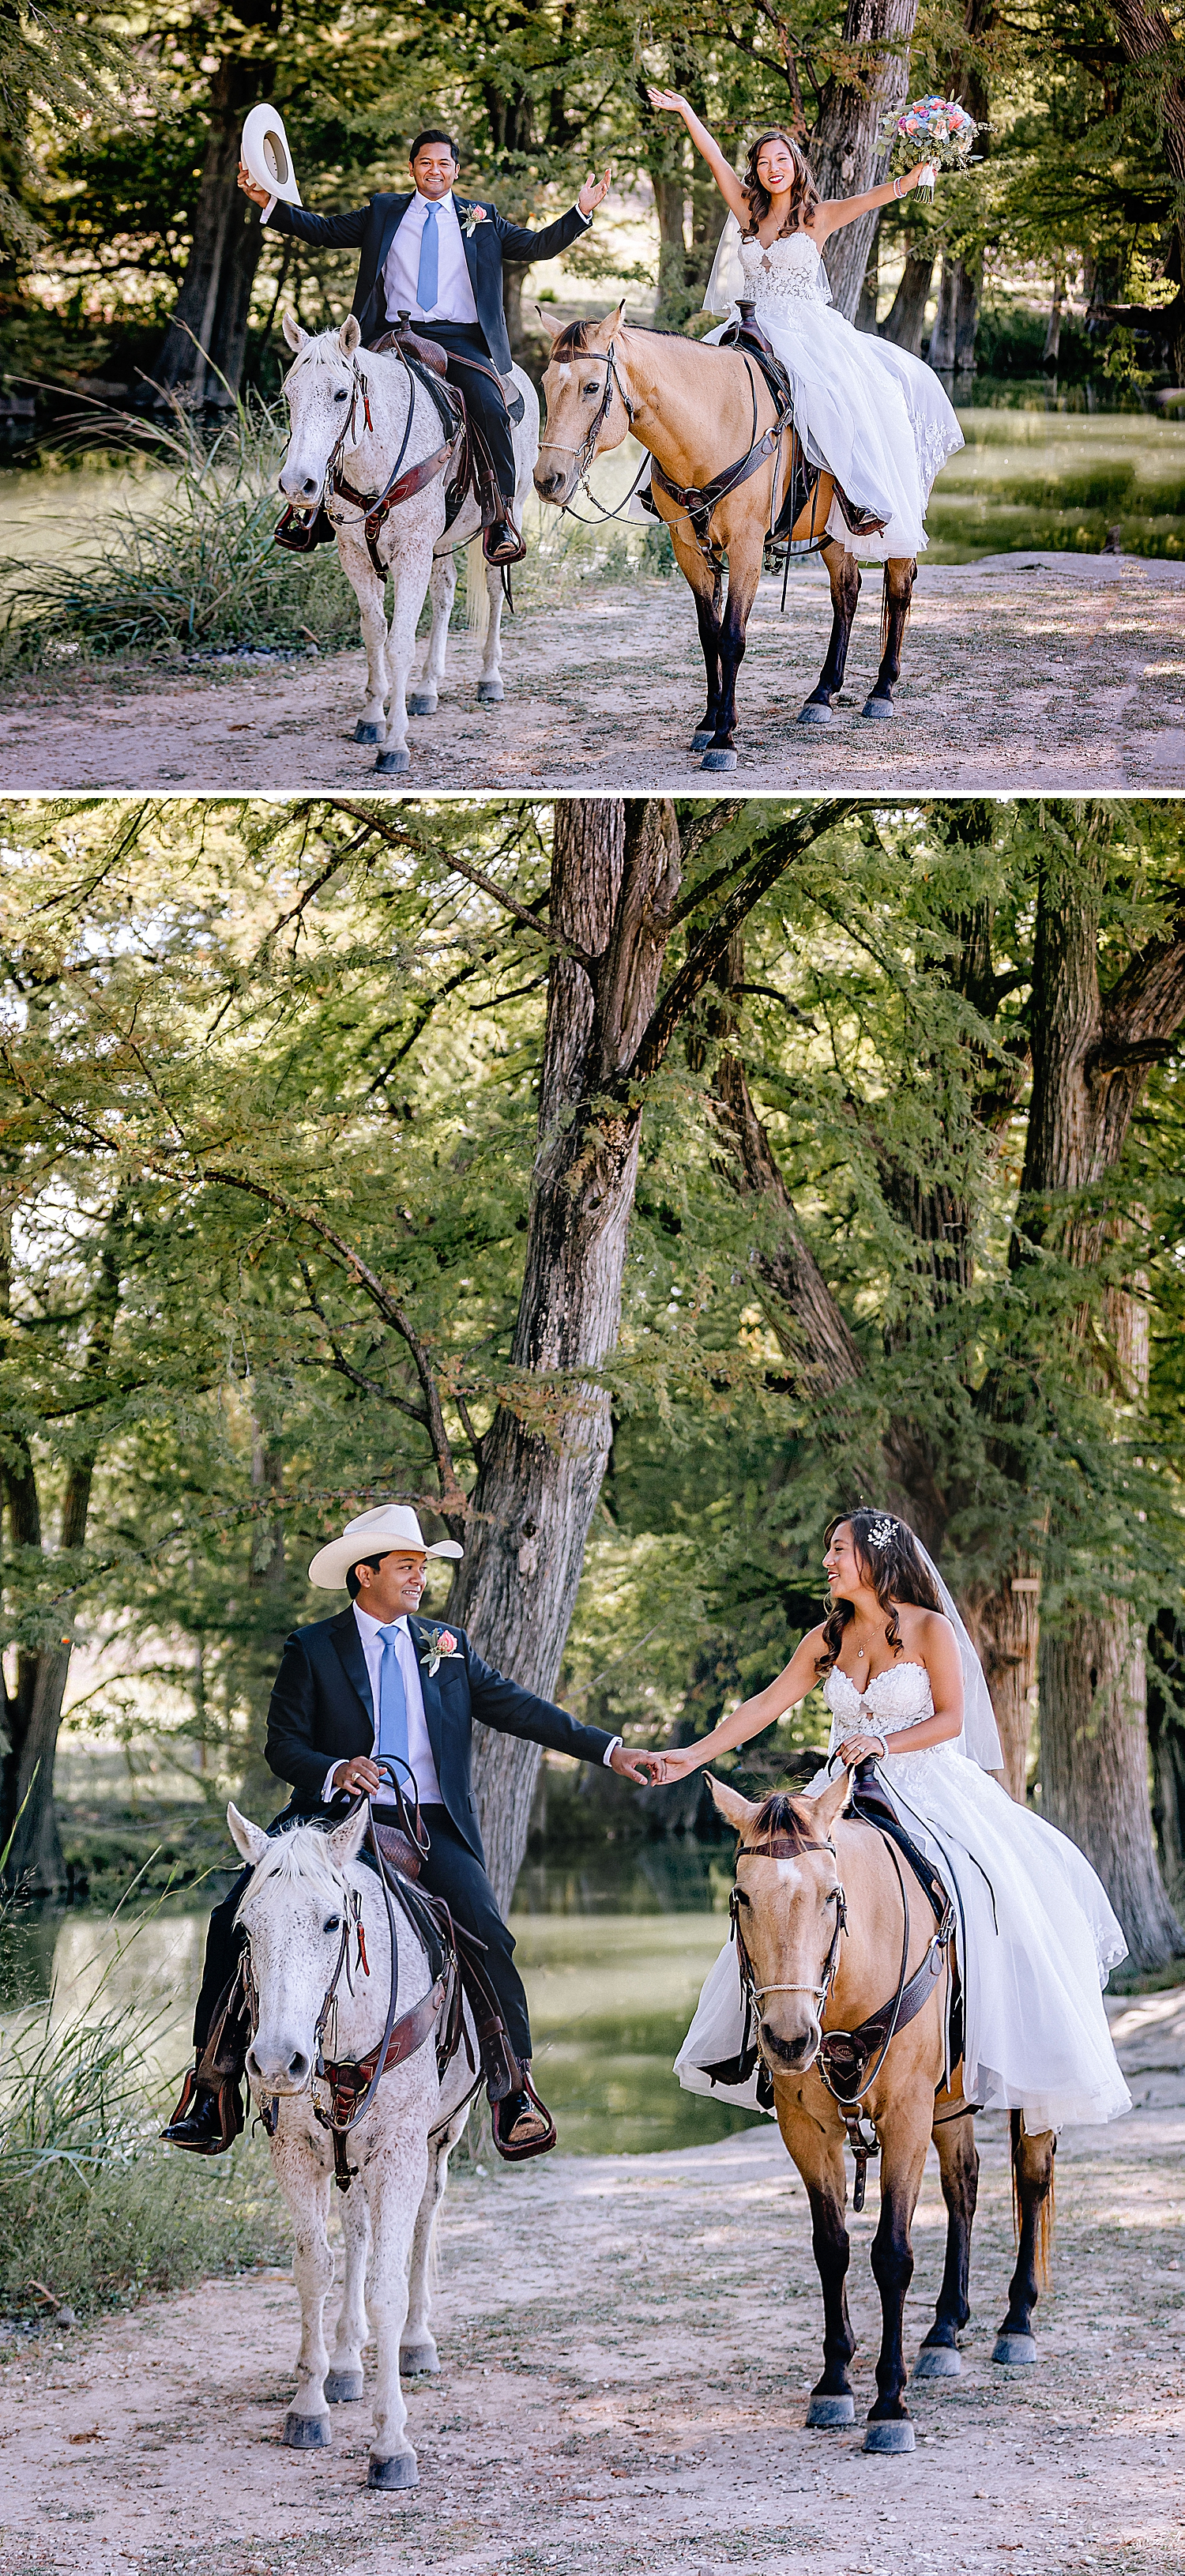 Bandera-Texas-Wedding-Photographer-Bride-Groom-on-Horses-Carly-Barton-Photography_0119.jpg